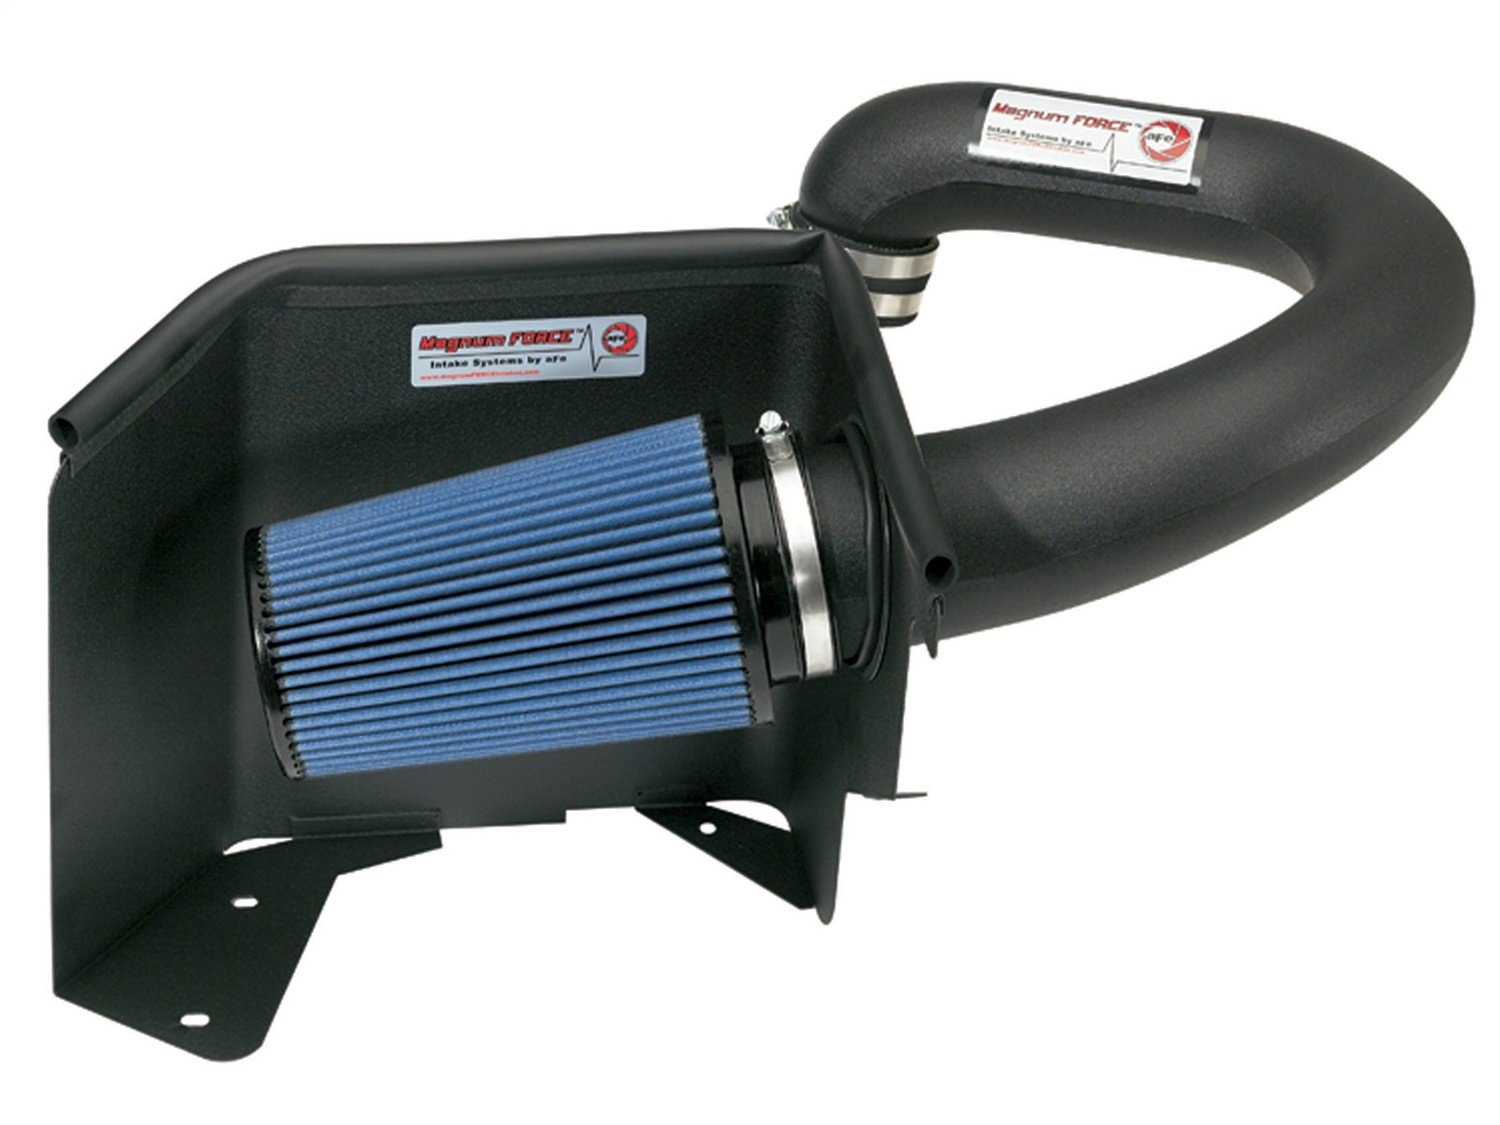 aFe Power Magnum FORCE 54-10422 Jeep Cherokee Oiled, 5-Layer Filter AFE Filters Performance Intake System XJ